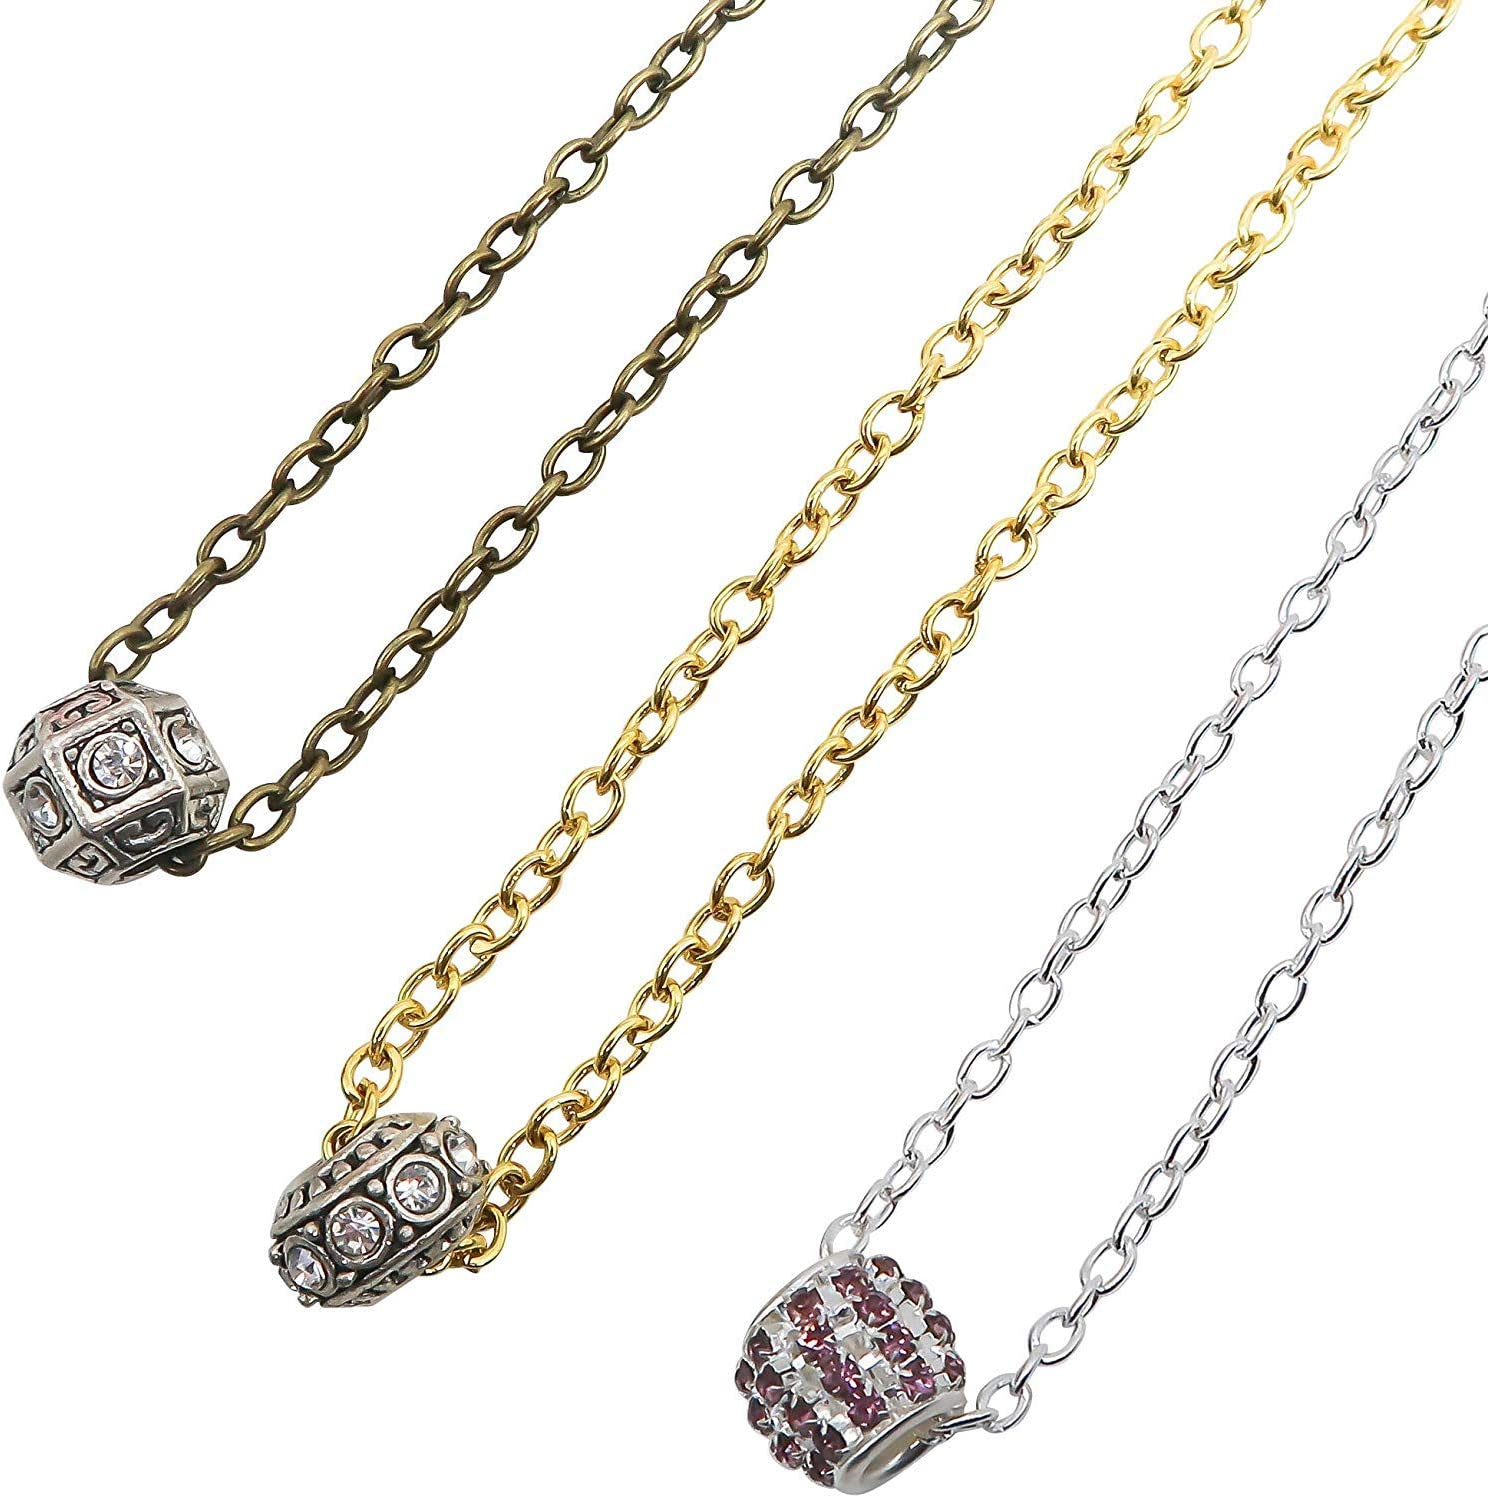 TOAOB 15m Mixed Colours Oval Cross Stainless Steel Cable Link Chain Clasps for Necklace Accessories DIY Jewelry Making Beginner Gold Silver Bronze in Colour